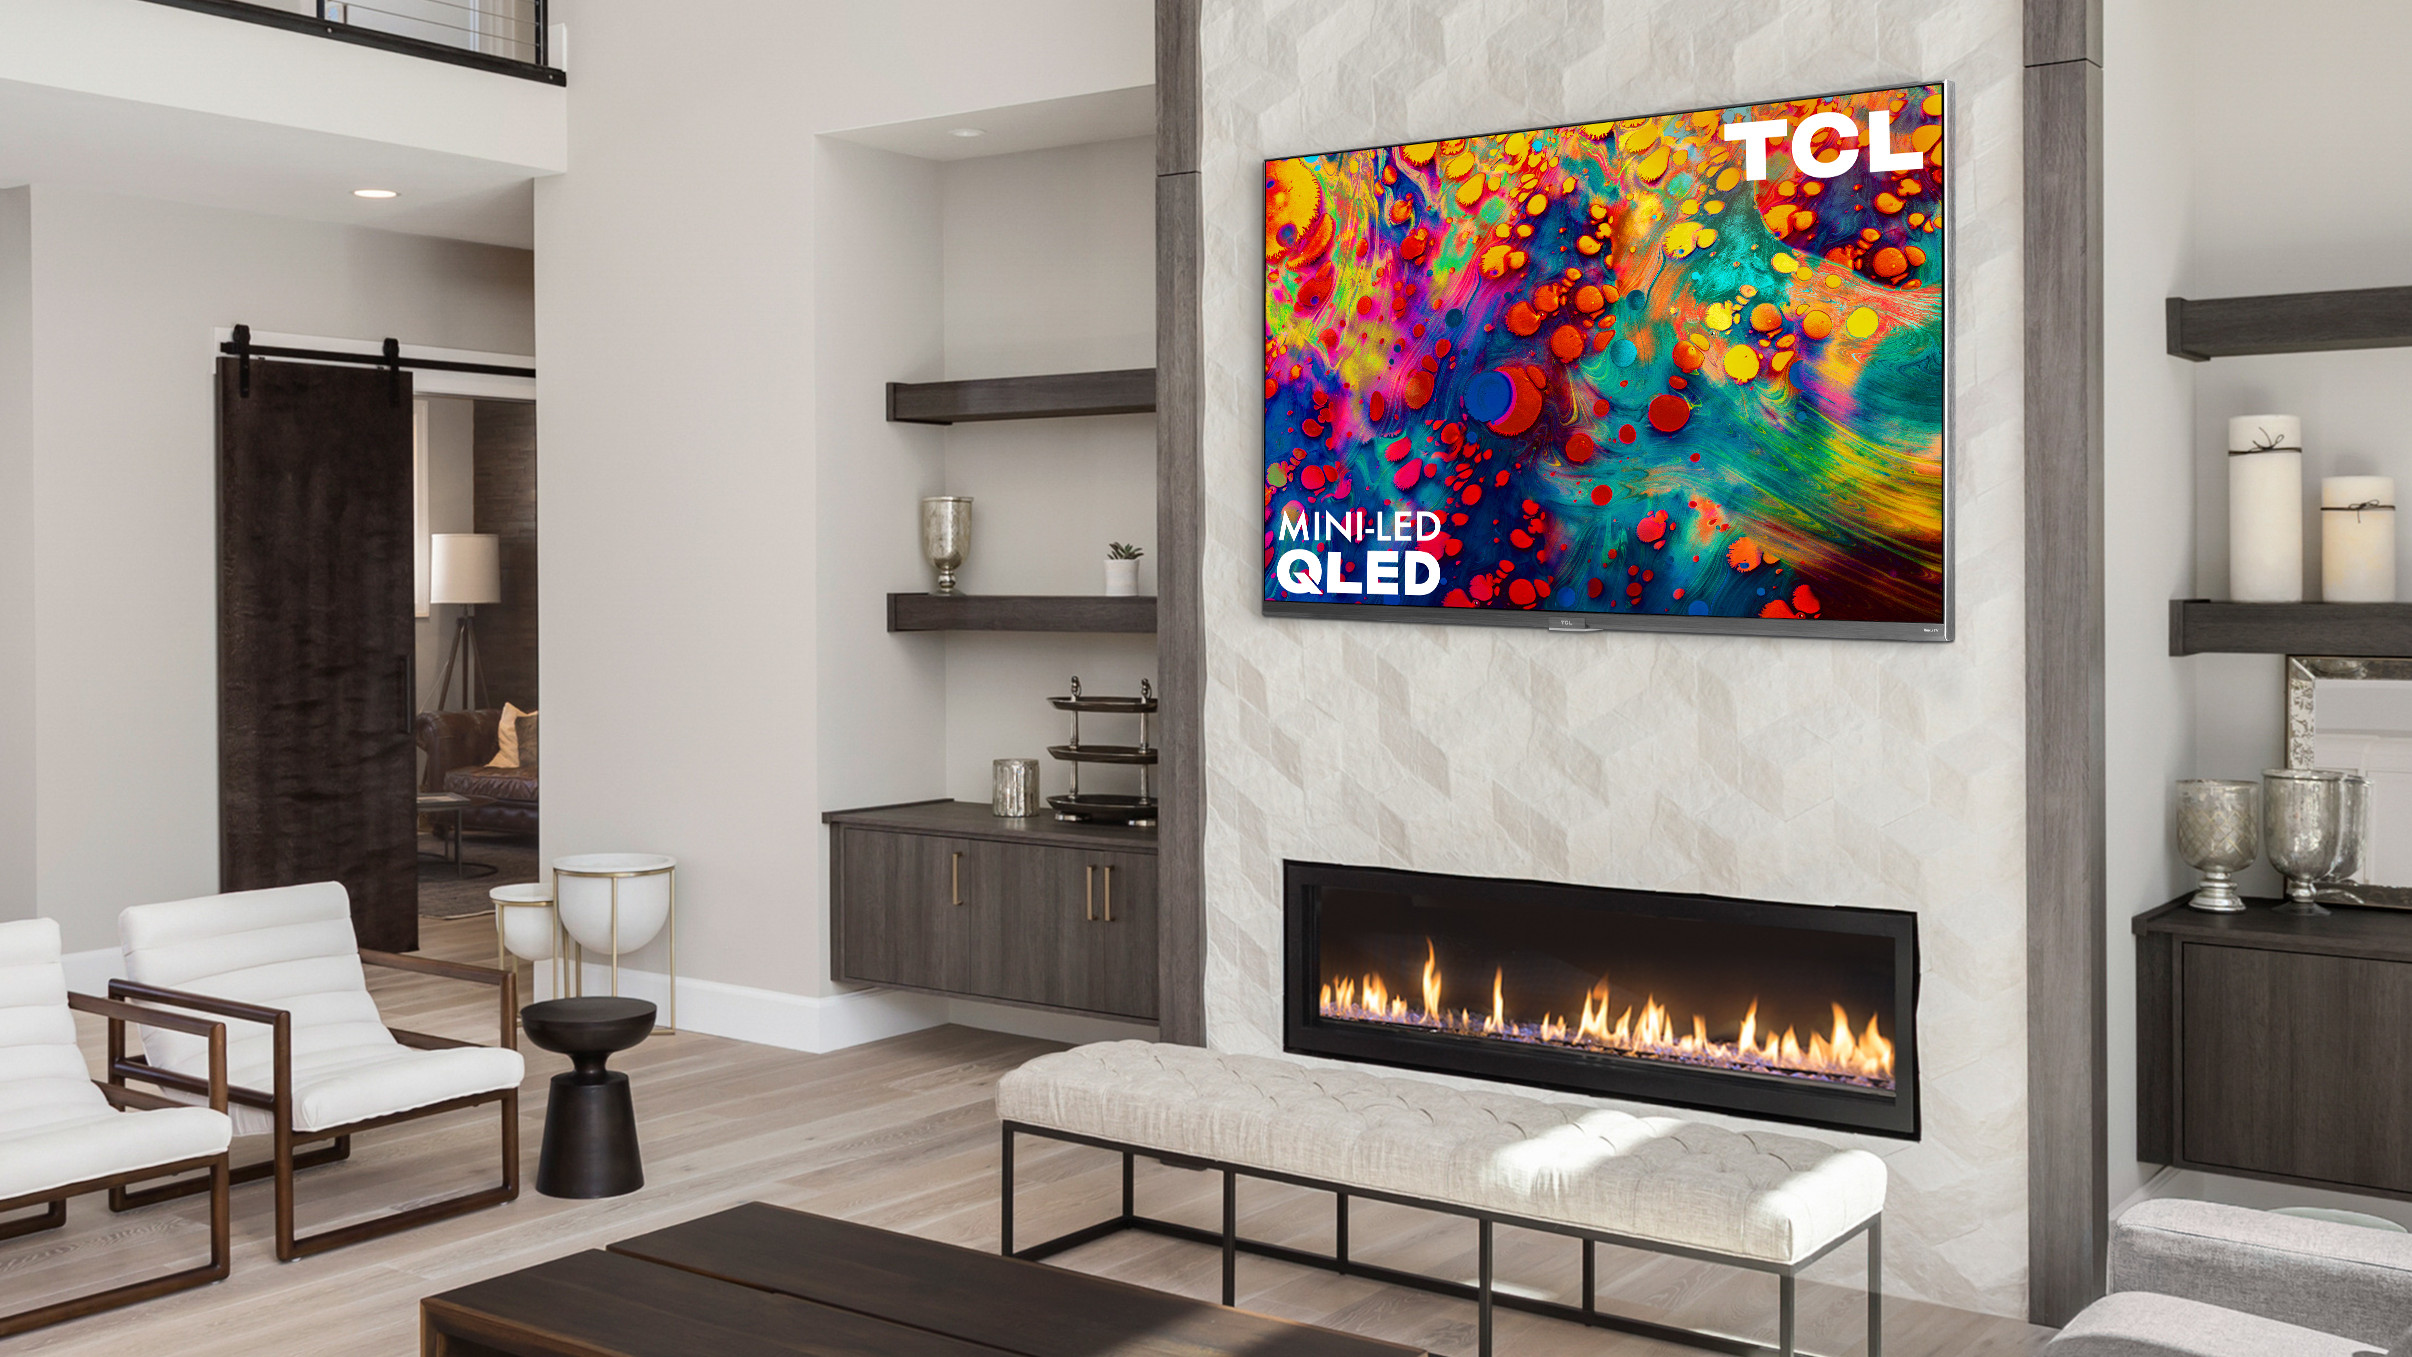 The TCL 6-Series isn't highly specified for gaming, but it is a big screen on the cheap.